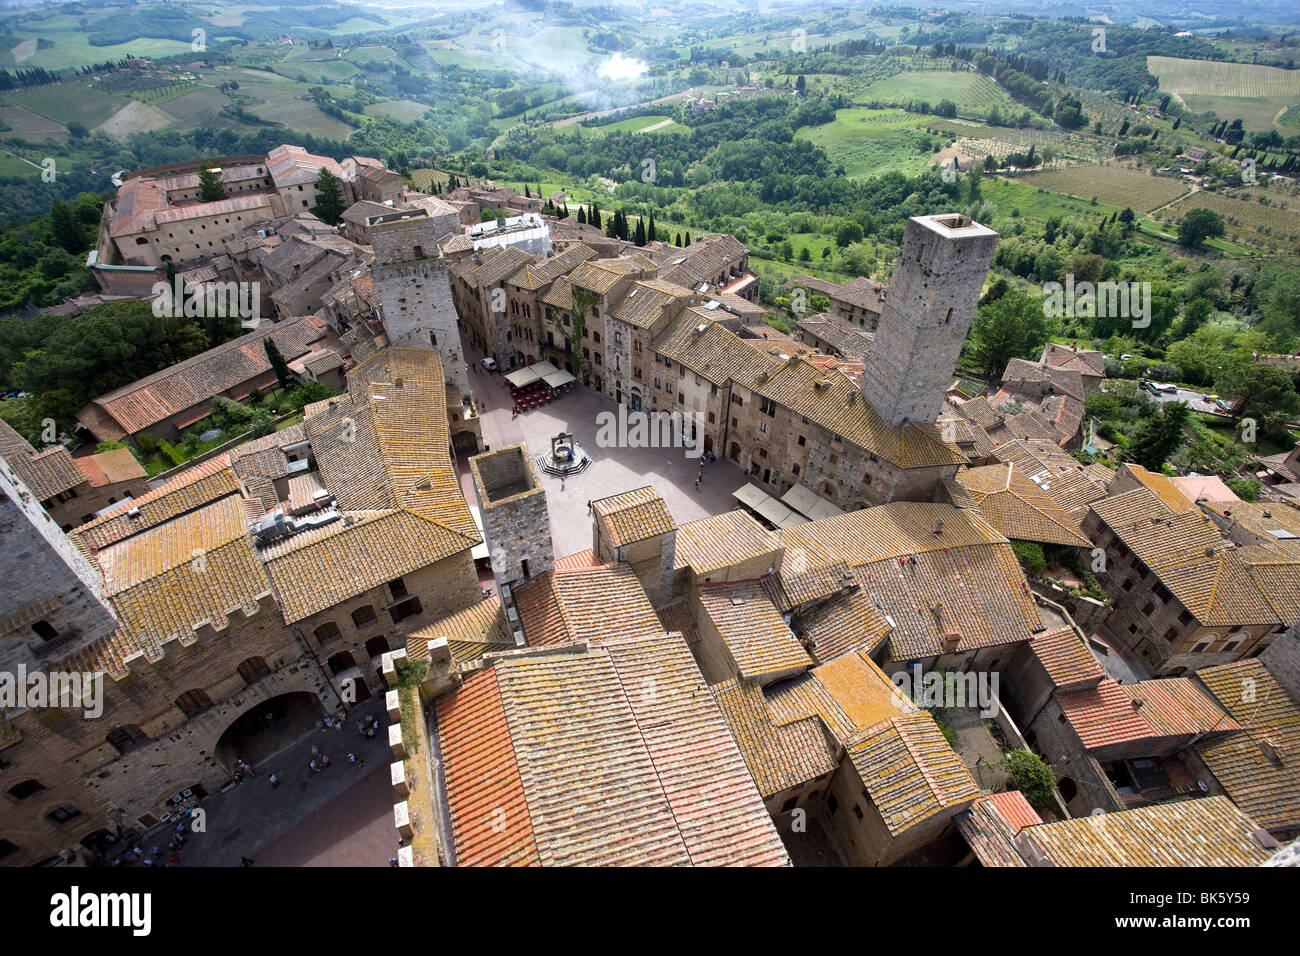 Aerial view of Sam Gimignano from one of its medieval stone towers, UNESCO World Heritage Site, Tuscany, Italy, - Stock Image